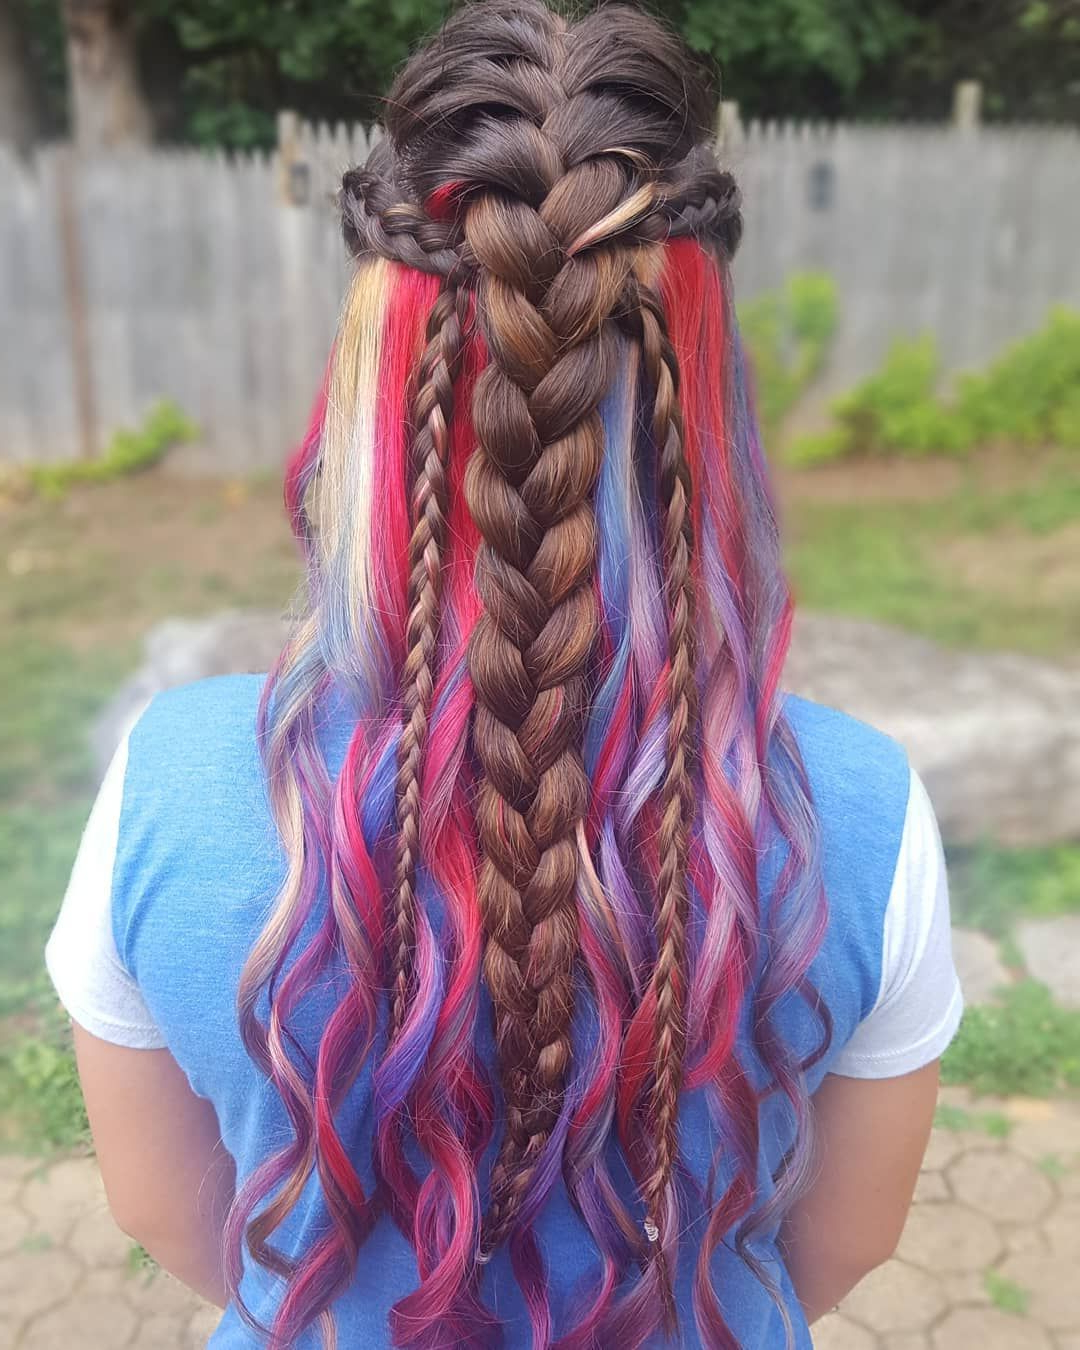 Preferred Peek A Boo Braid Hairstyles Pertaining To Red White And Blue Peekaboo Hair Color With Fun Festival (View 6 of 20)